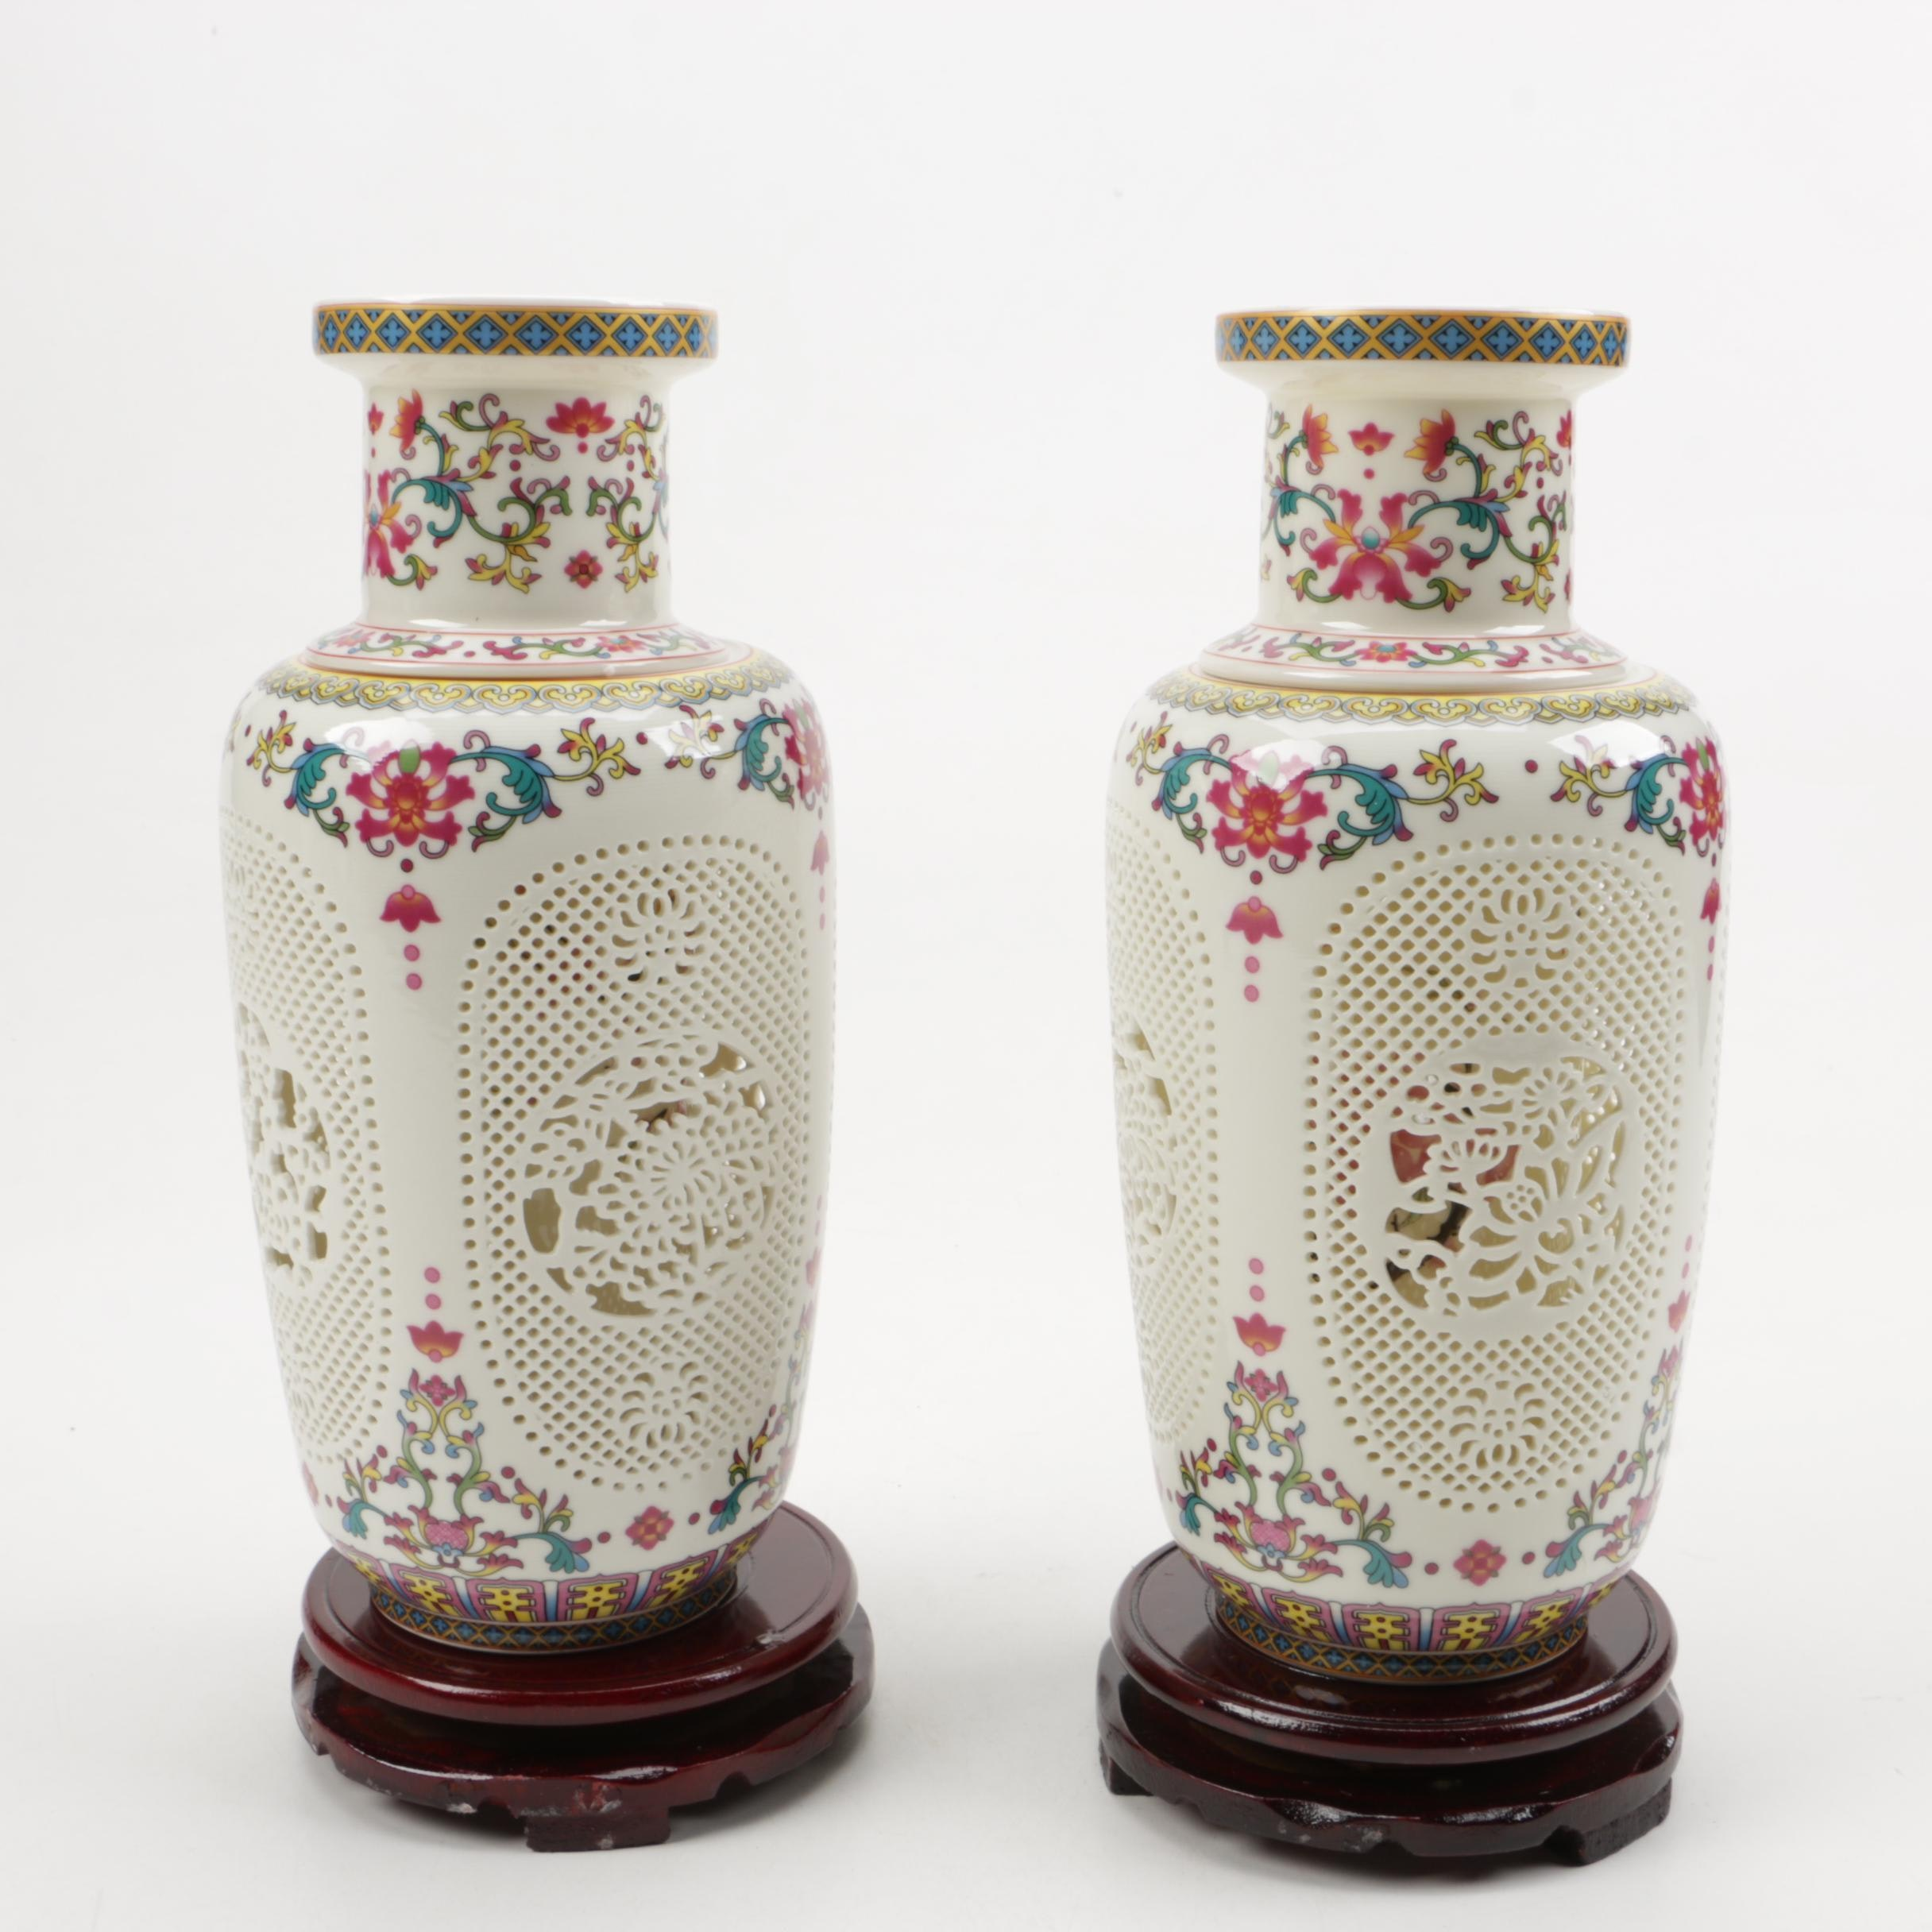 Two Porcelain Vases with Wooden Stands